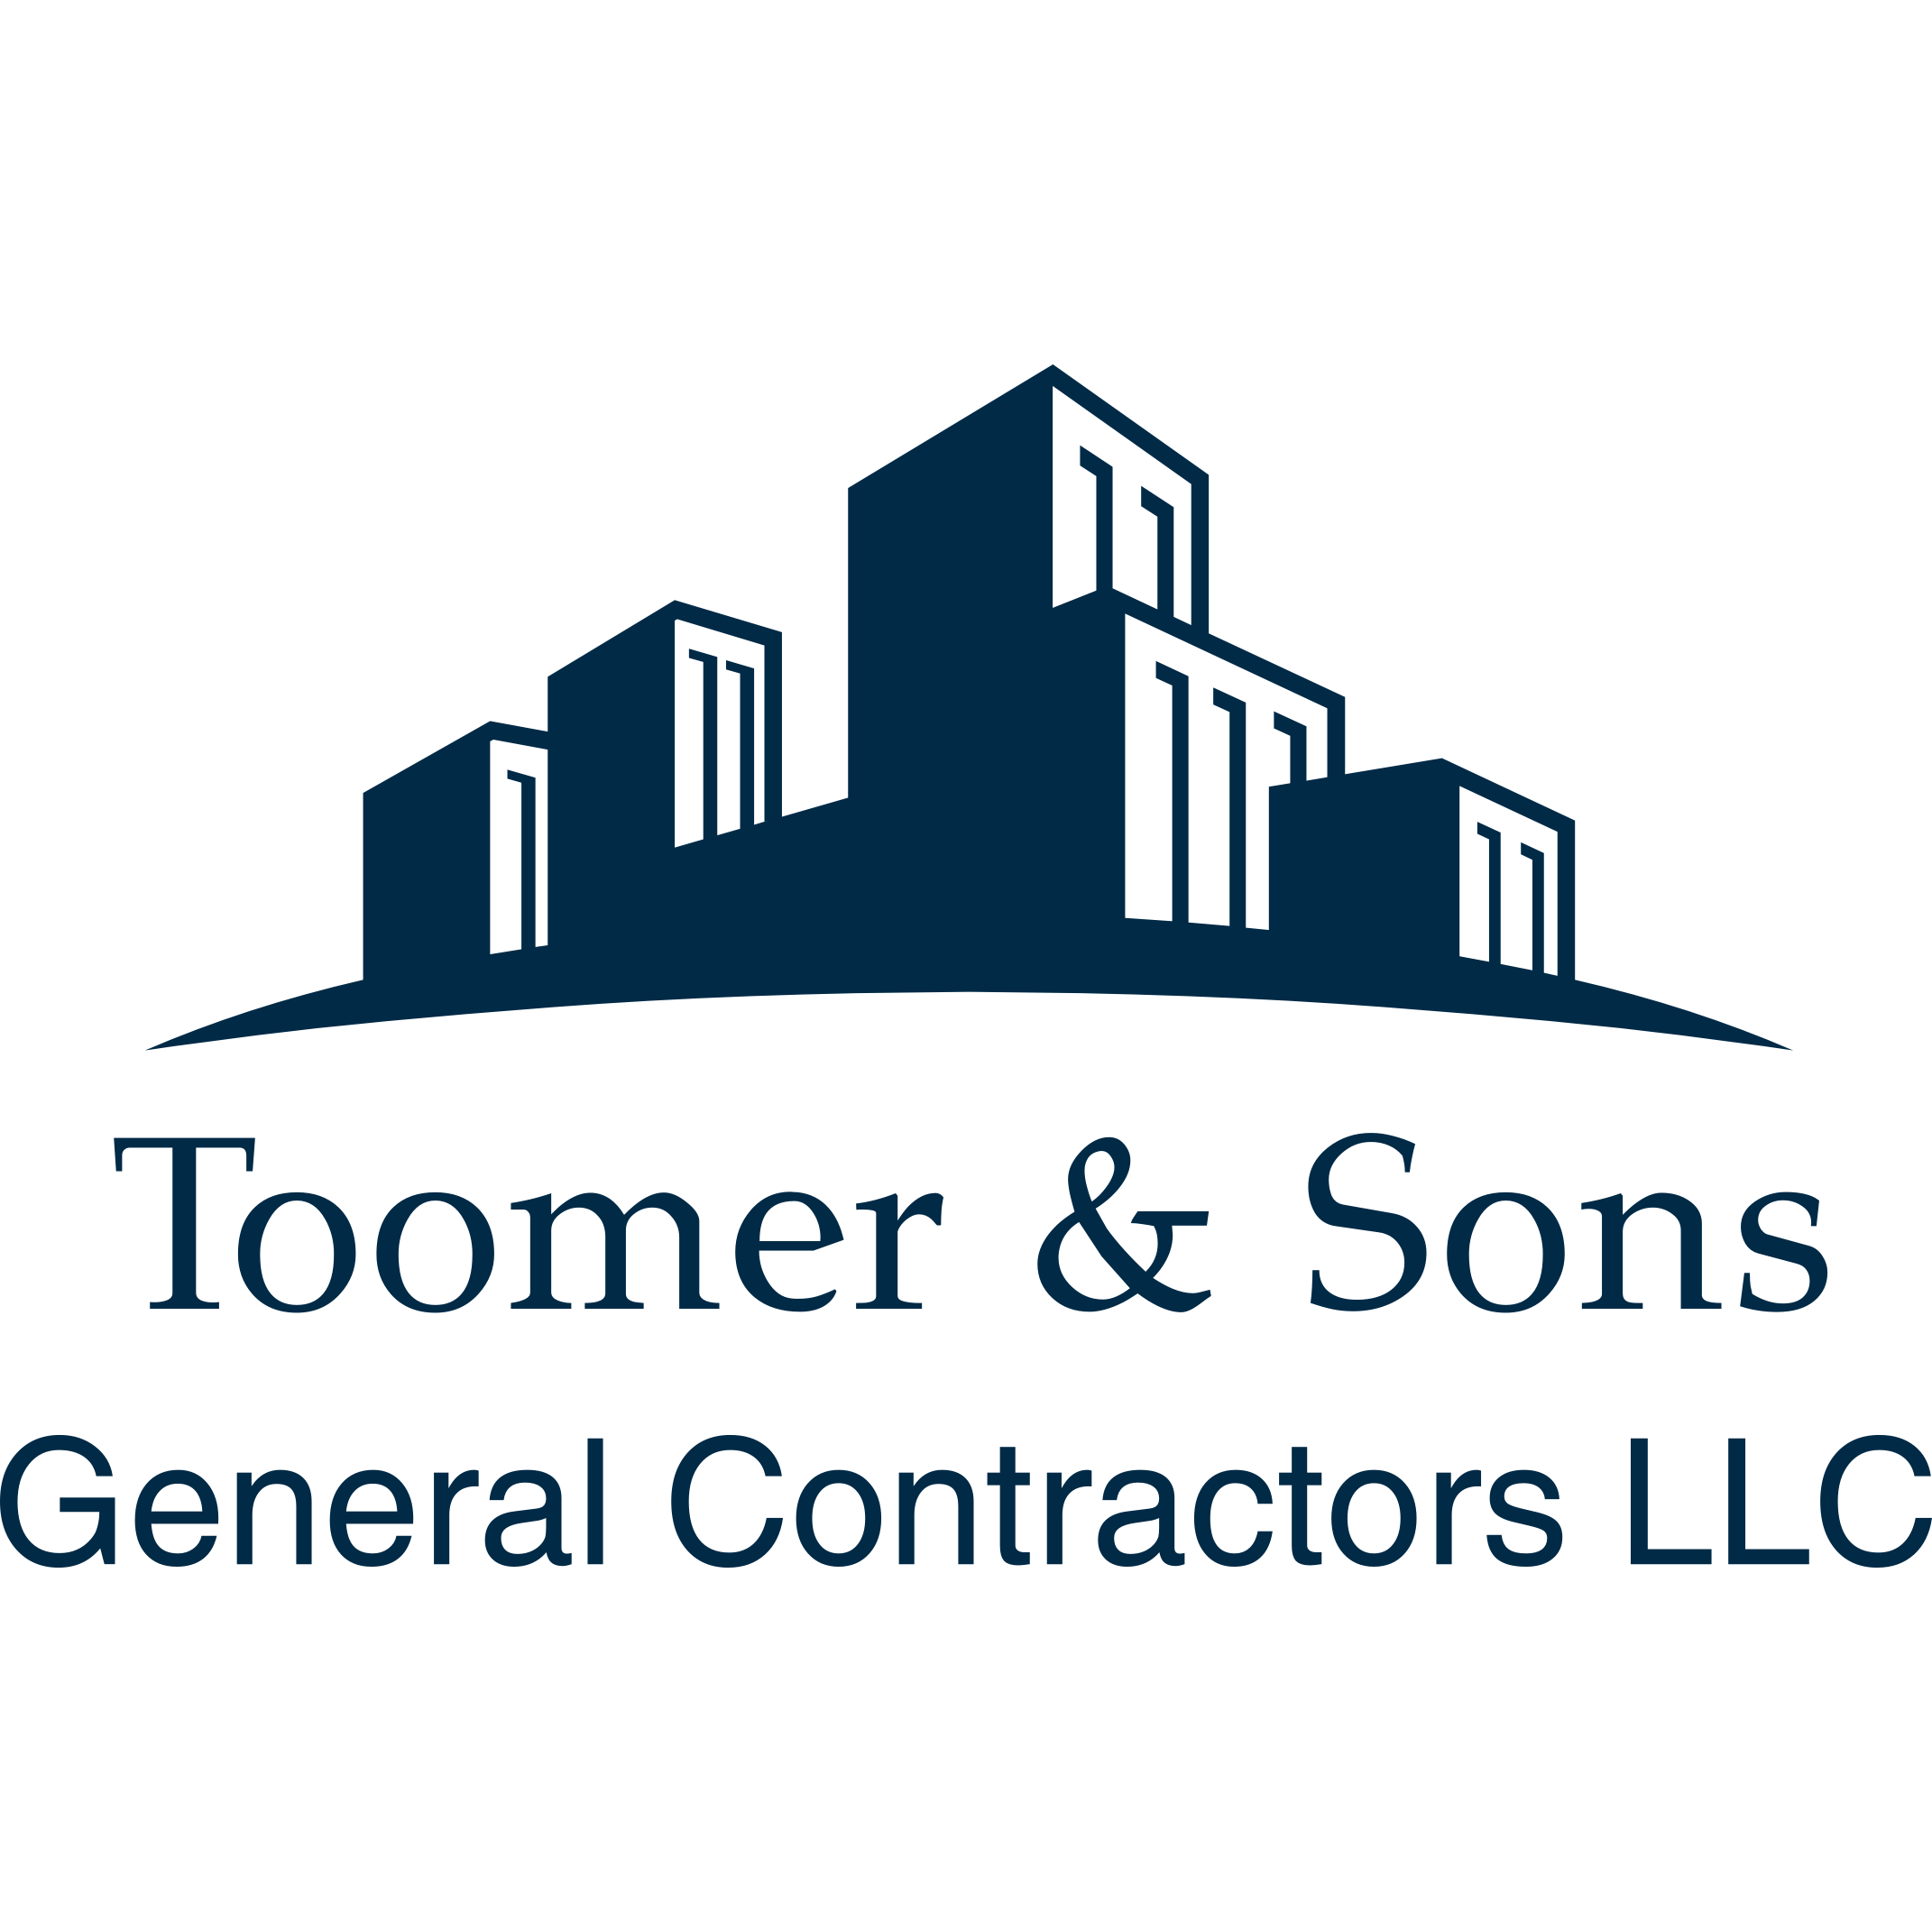 Toomer & Sons General Contractors LLC